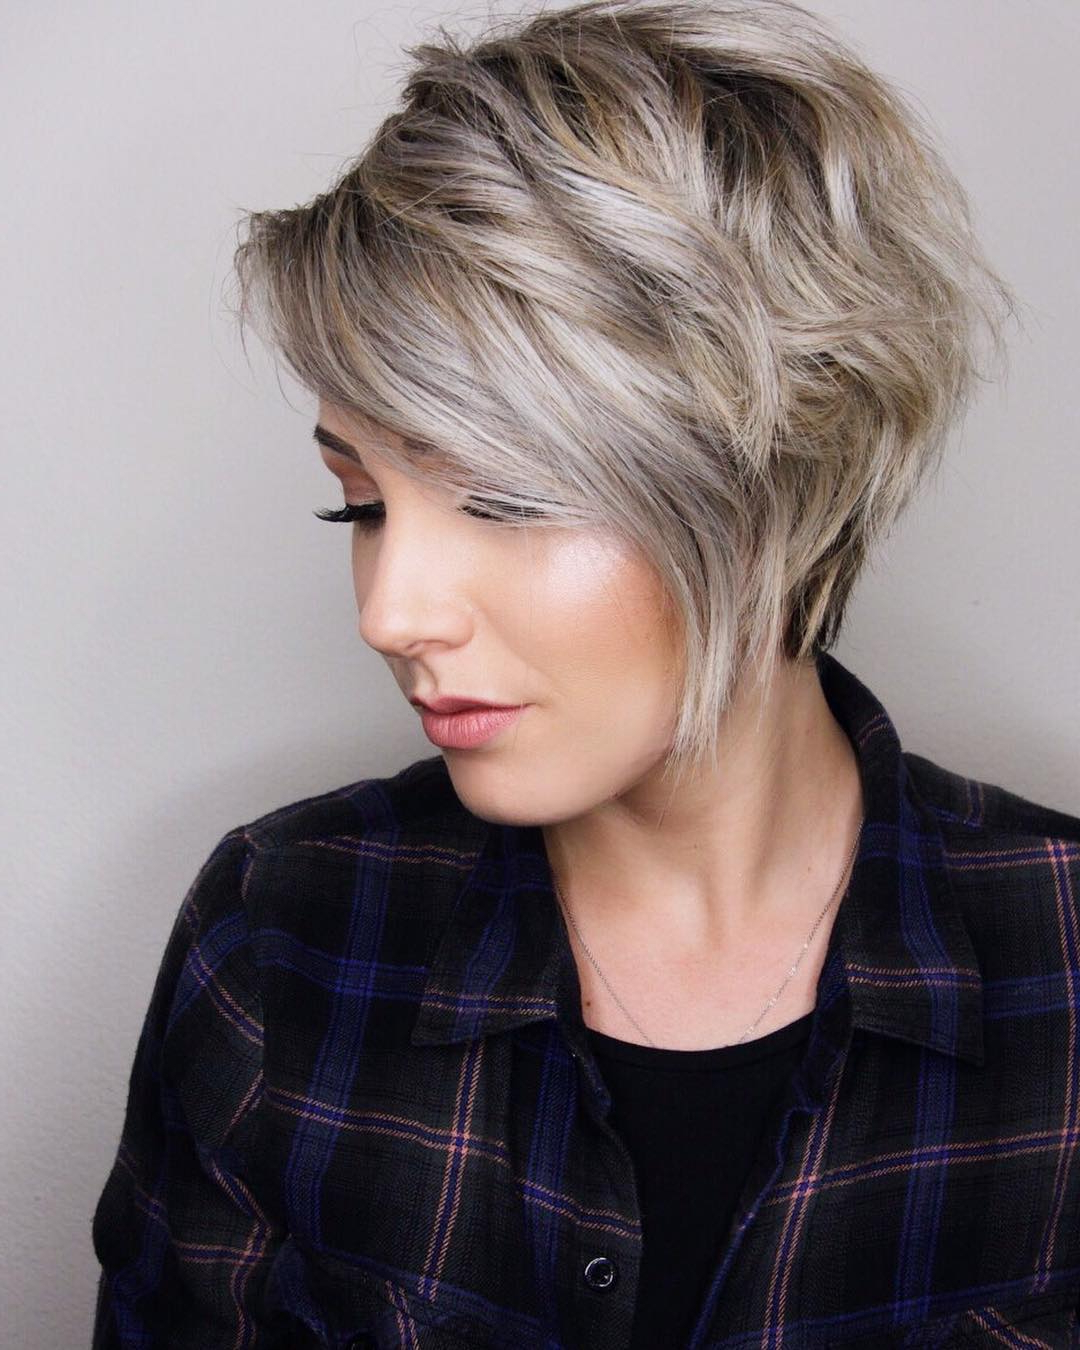 10 Trendy Layered Short Haircut Ideas 2019 – 'extra Special' Inspiration With Regard To Tapered Gray Pixie Hairstyles With Textured Crown (View 18 of 20)